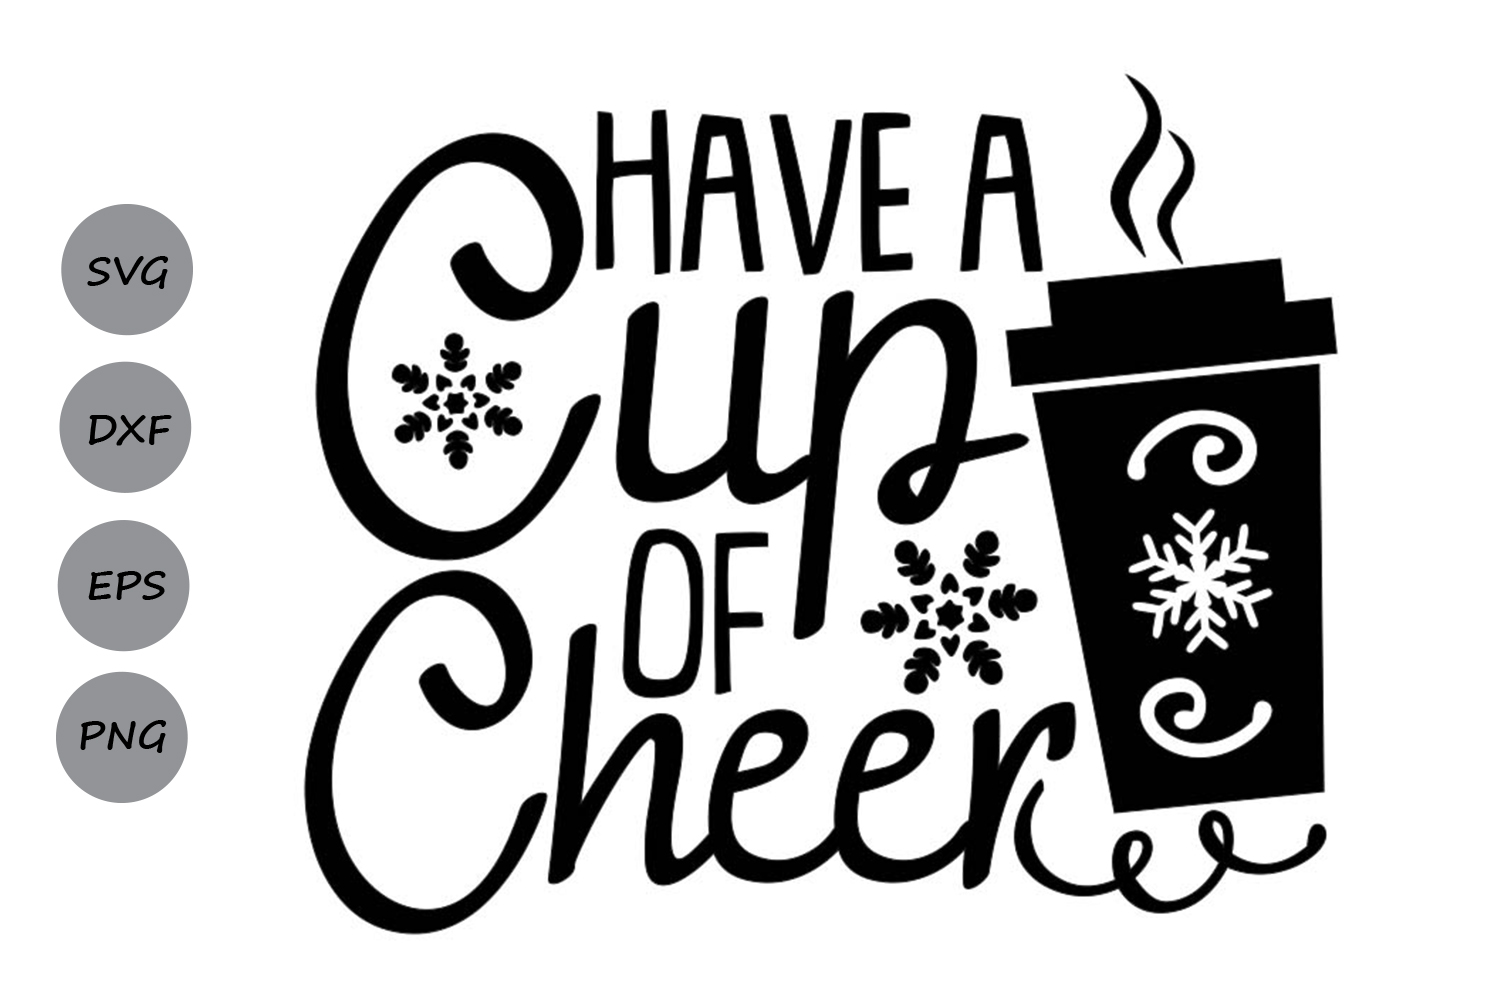 Have A Cup Of Cheer Svg, Christmas Svg, Coffee Svg, Winter. example image 2